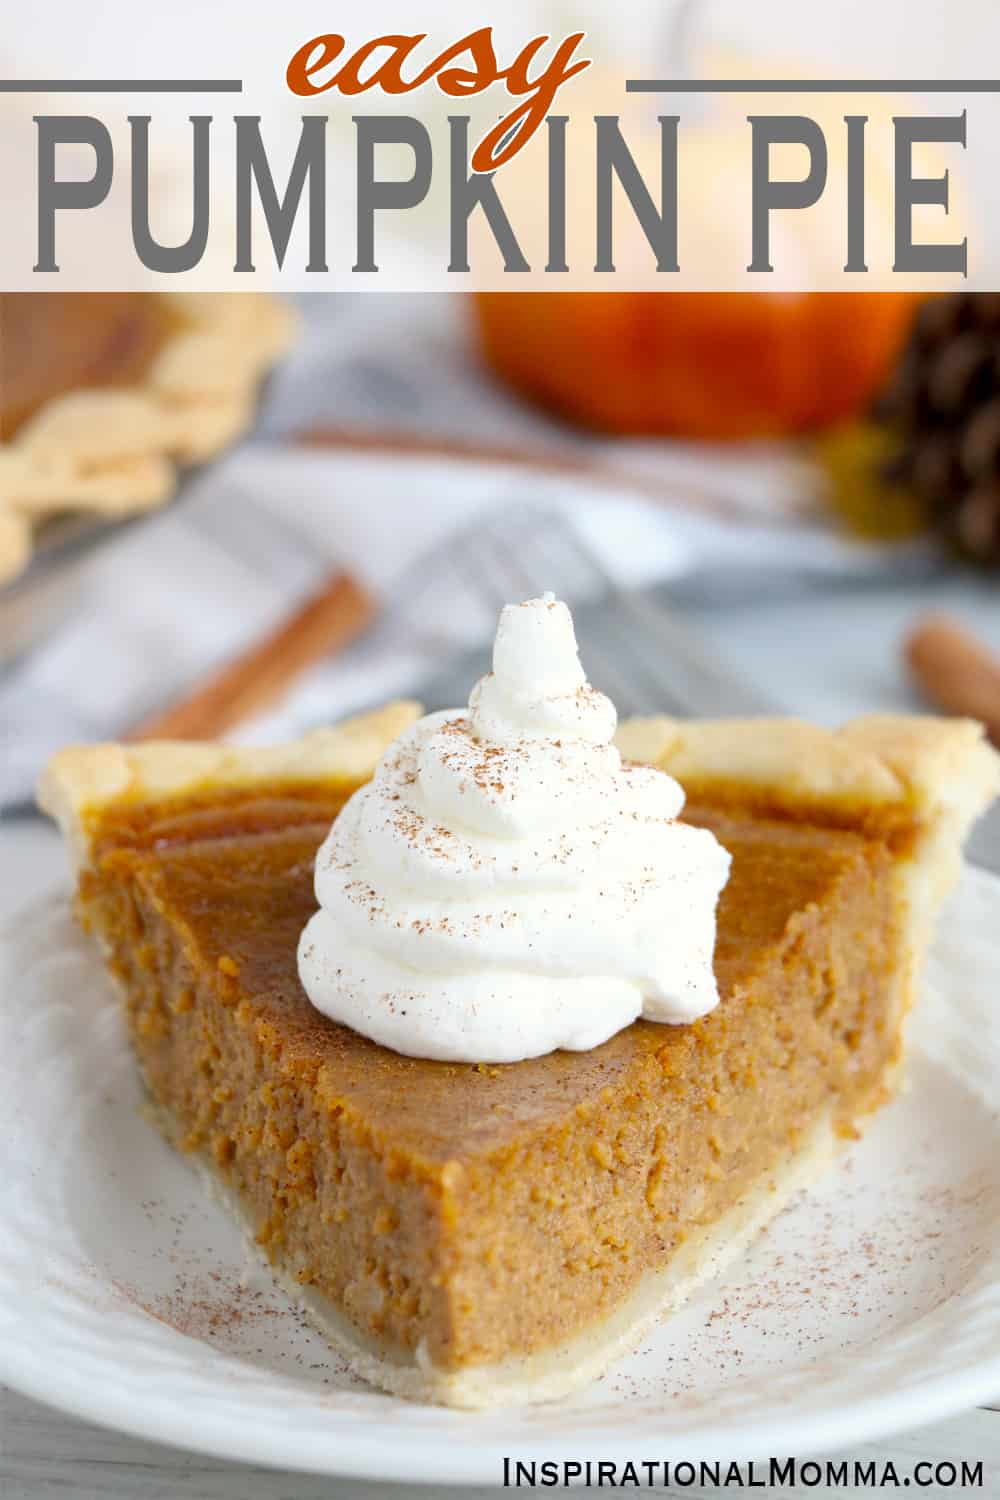 This Easy Pumpkin Pie is guaranteed to impress everyone. A light crust filled with a luscious flavorful filling makes the perfect pie! #InspirationalMomma #easypumpkinpie #pumpkinpie #homemadepumpkinpie #baking #recipes #pie